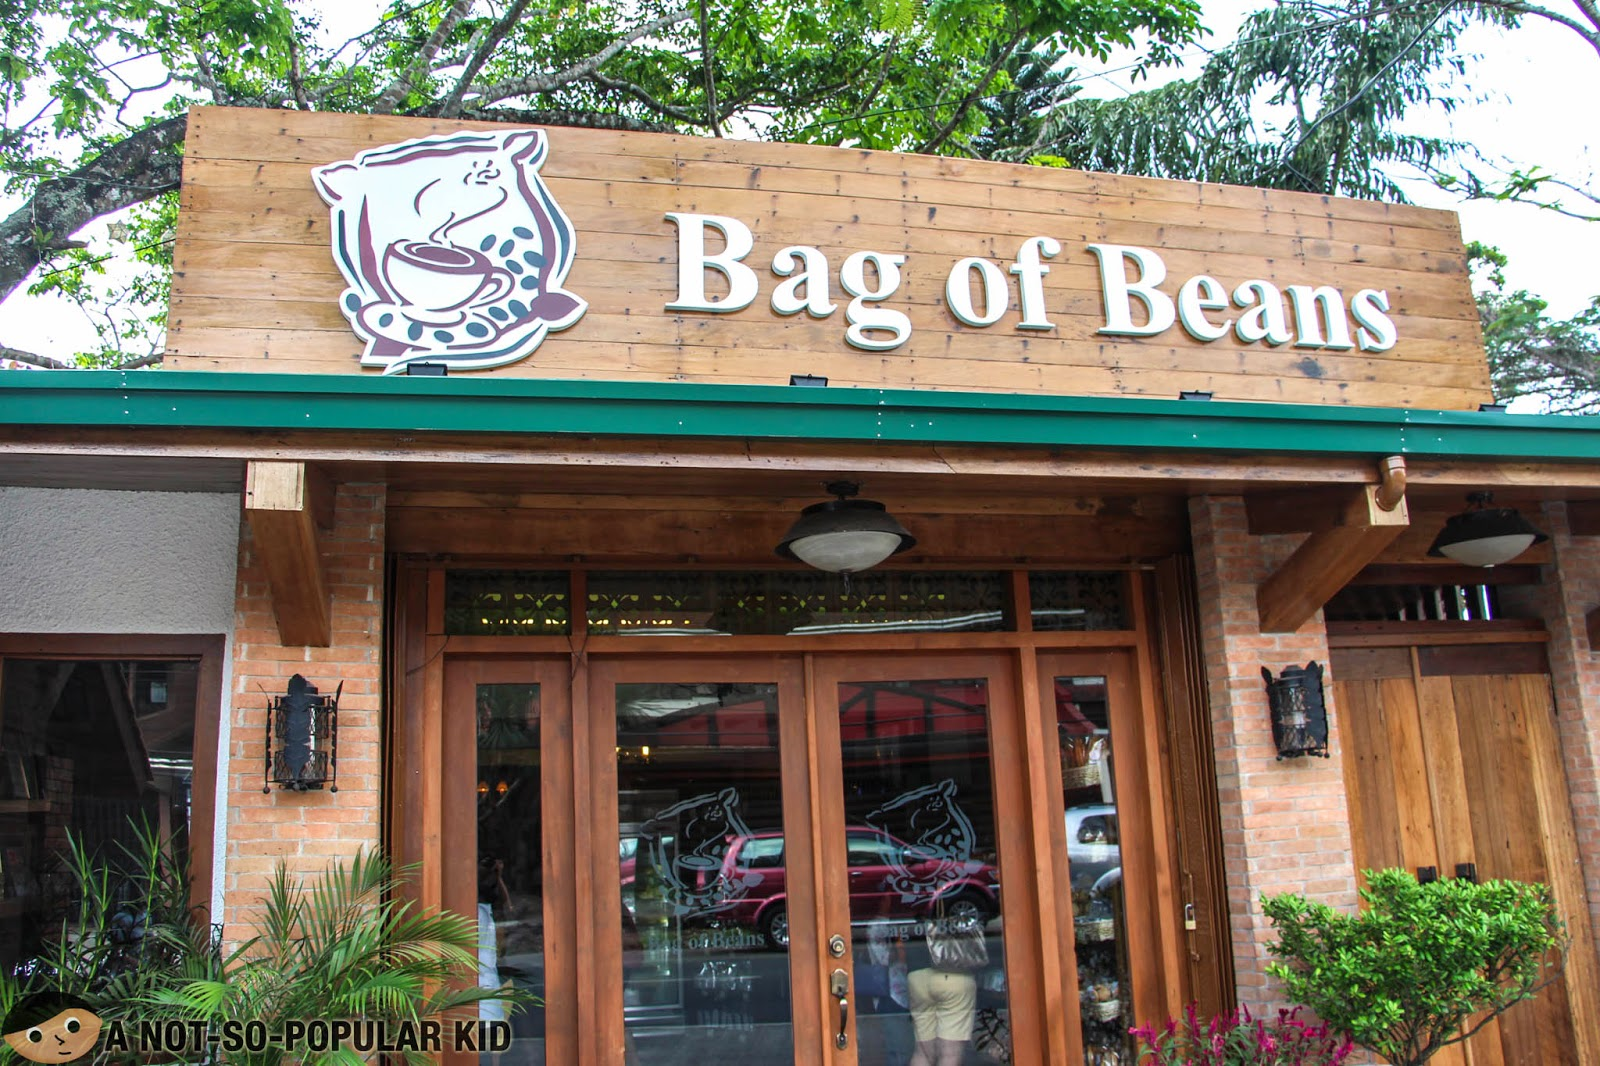 The facade of Bag of Beans in Tagaytay City